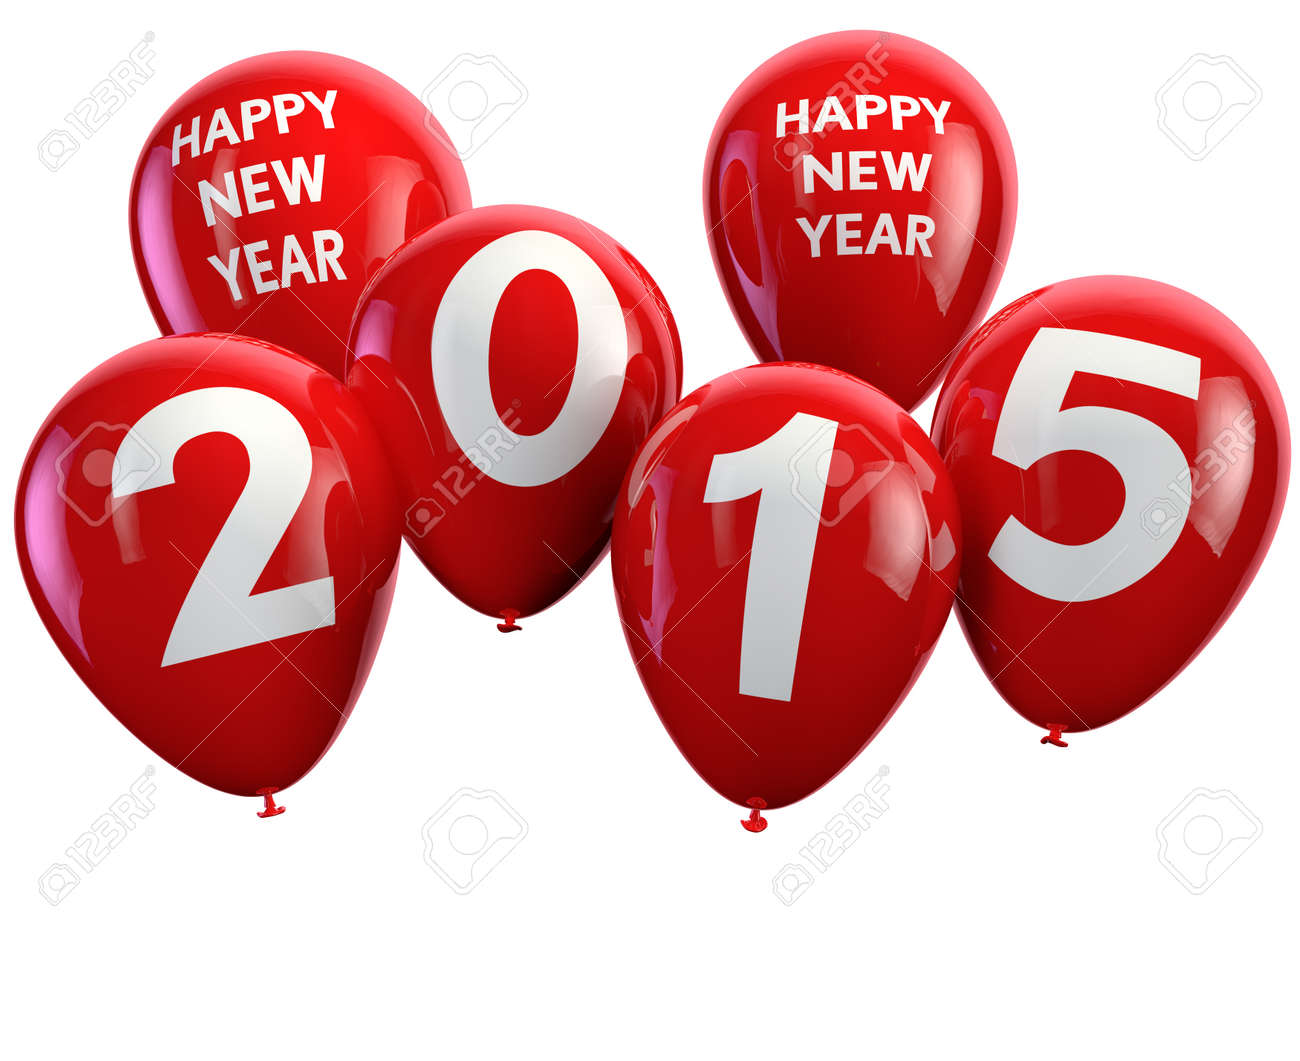 2015 happy new year greetings with red isolated balloons stock 2015 happy new year greetings with red isolated balloons stock photo 34368038 m4hsunfo